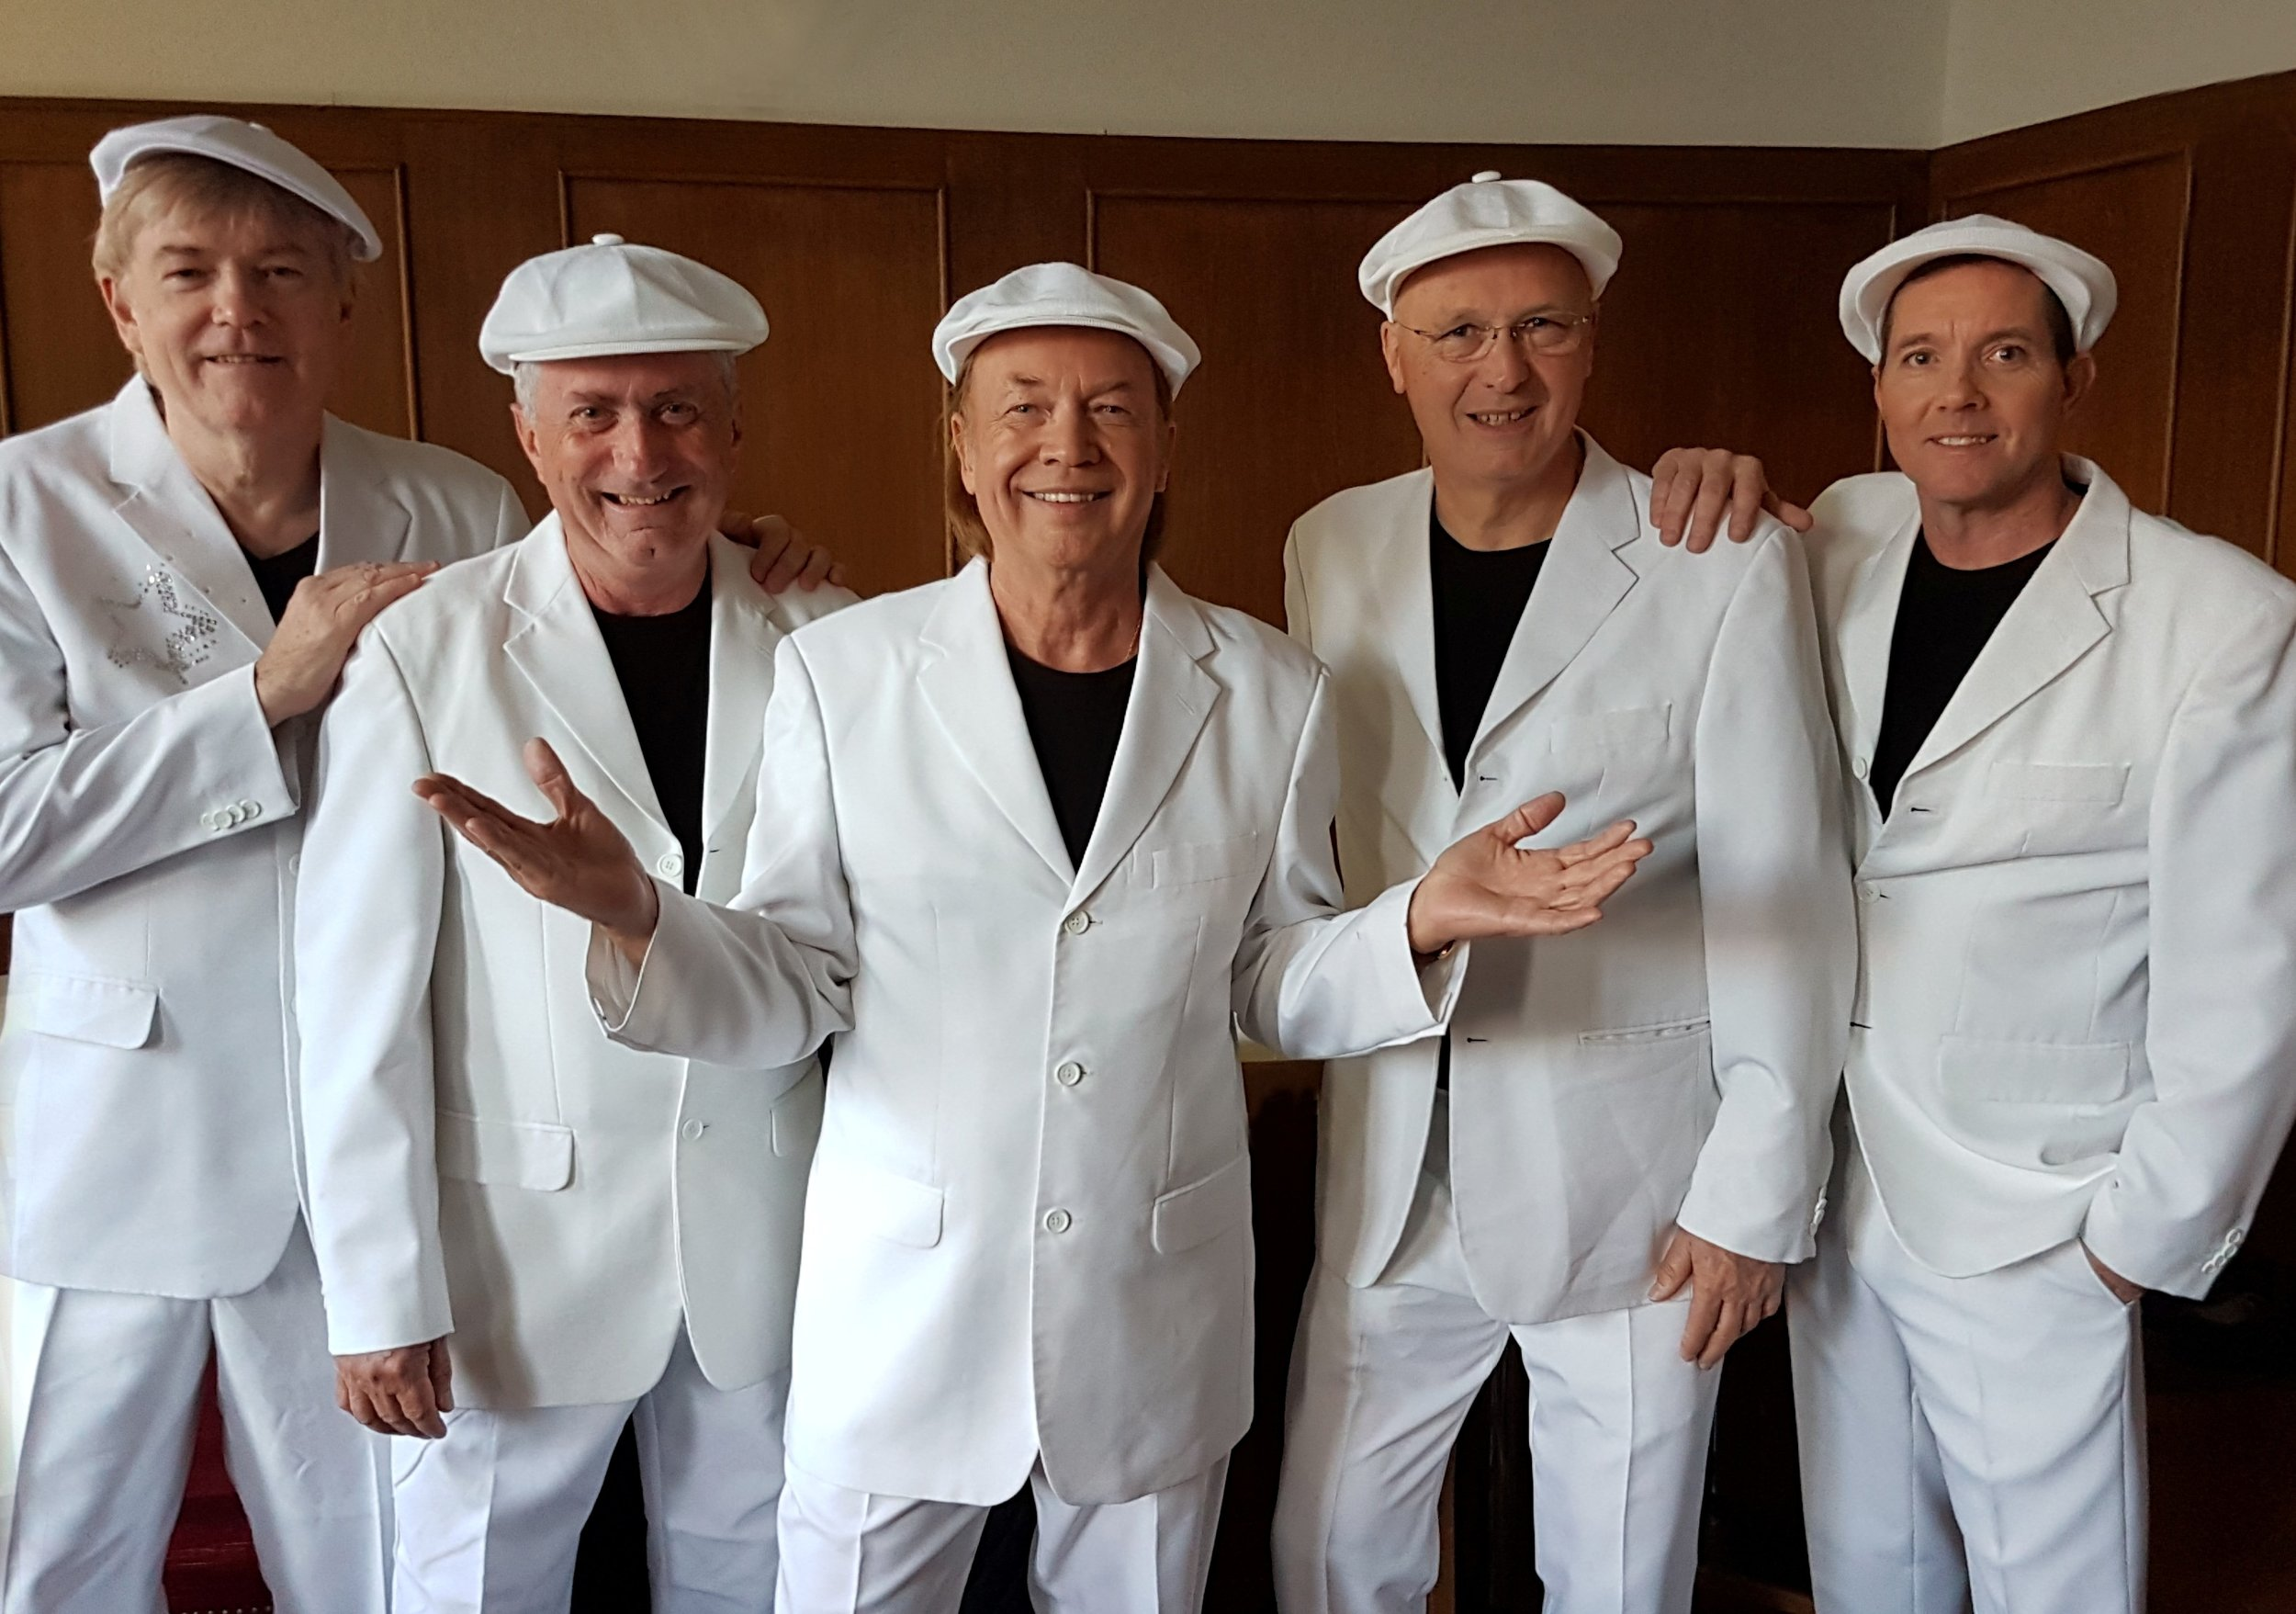 The Rubettes Feat Alan Williams 2019 Presse 5.jpg